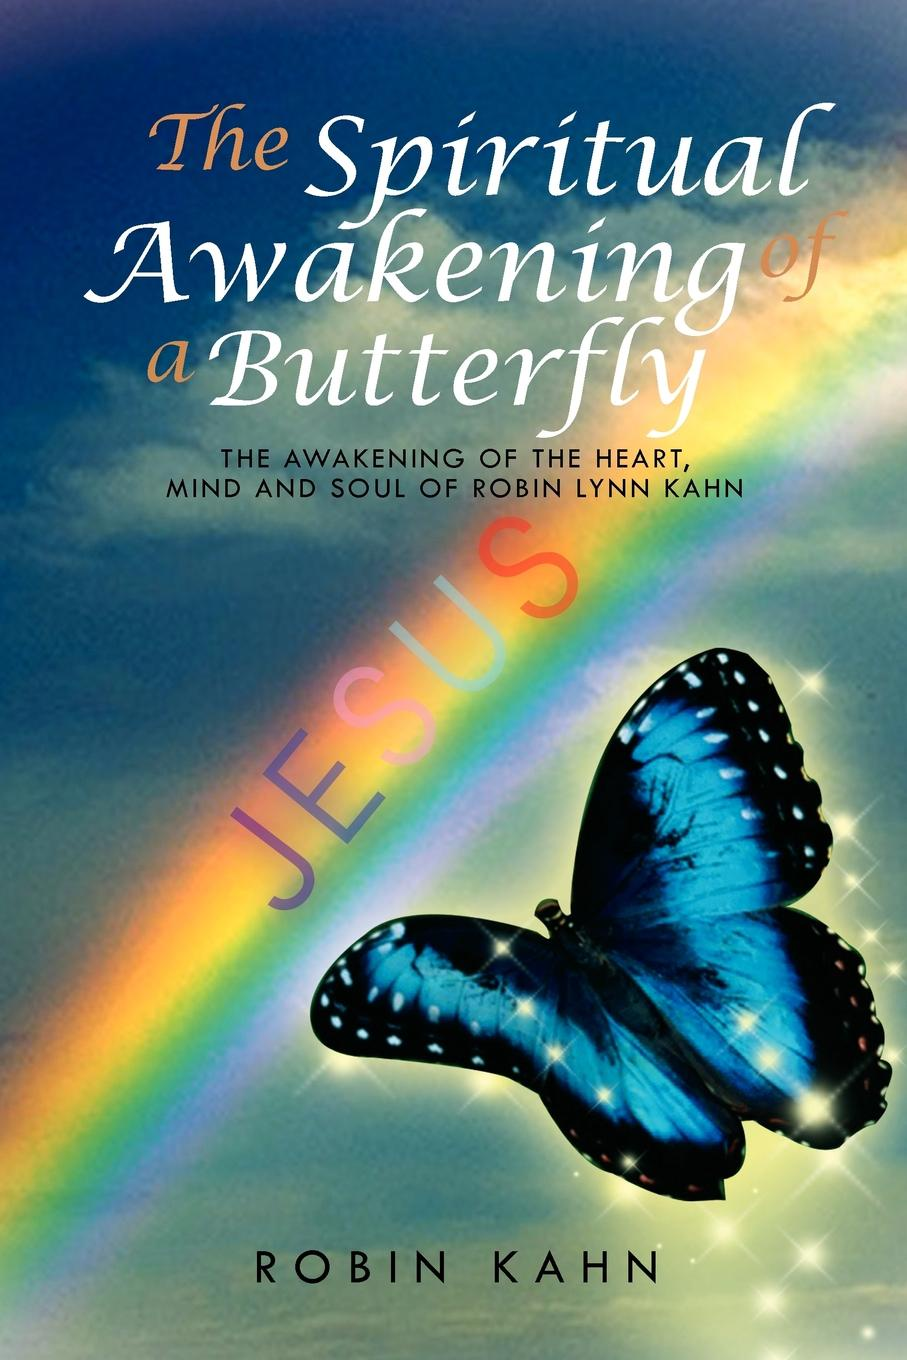 лучшая цена Robin Kahn The Spiritual Awakening of a Butterfly. The Awakening of the Heart, Mind and Soul of Robin Lynn Kahn